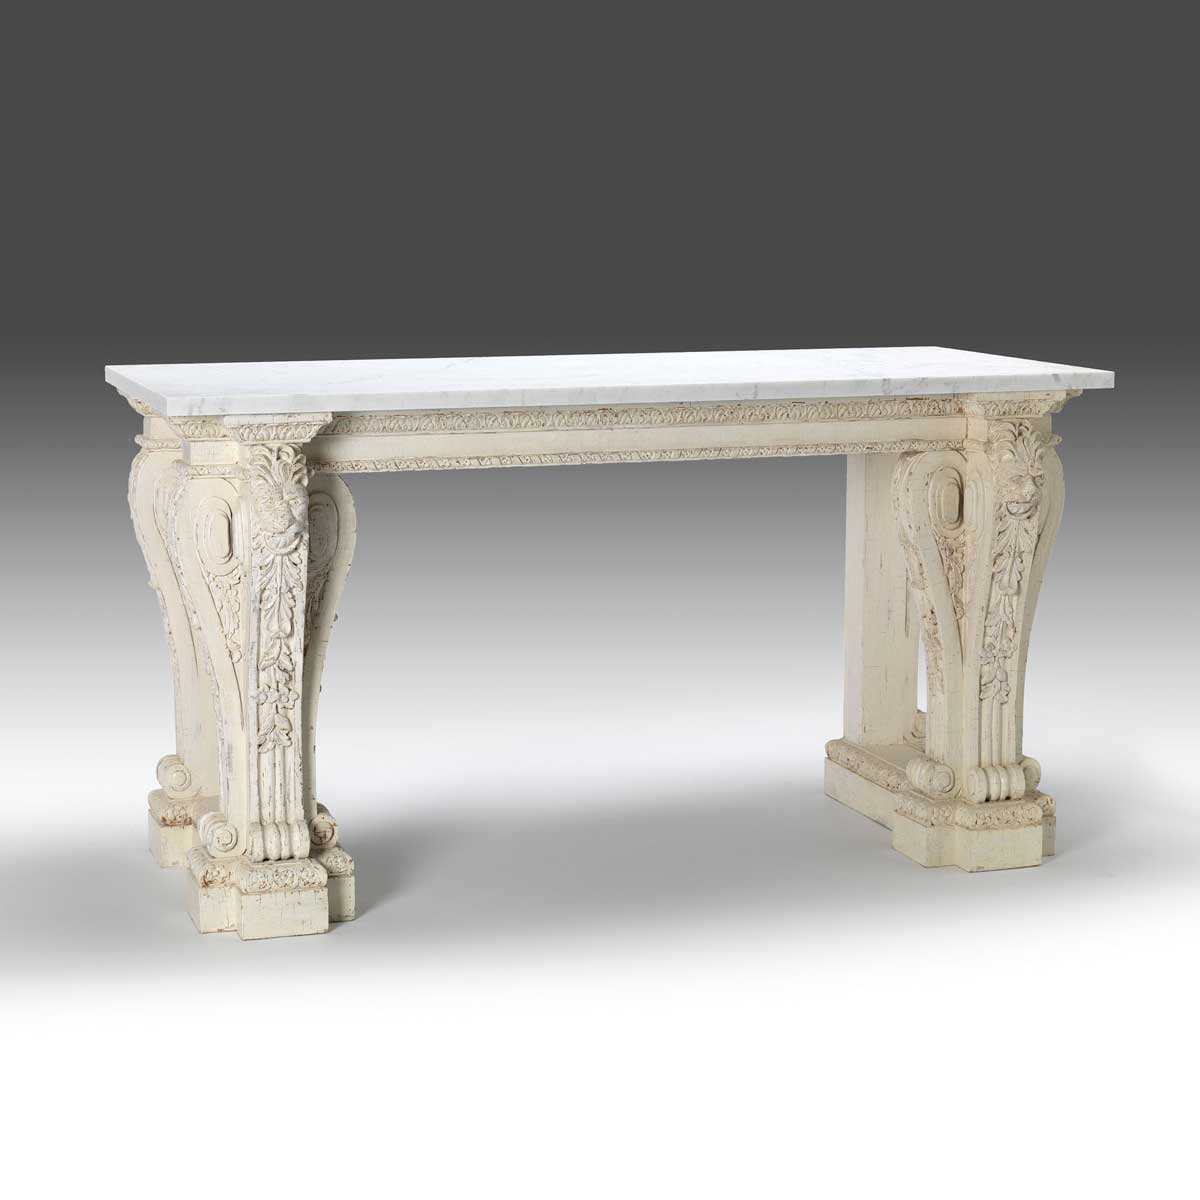 An English George II Designed Table